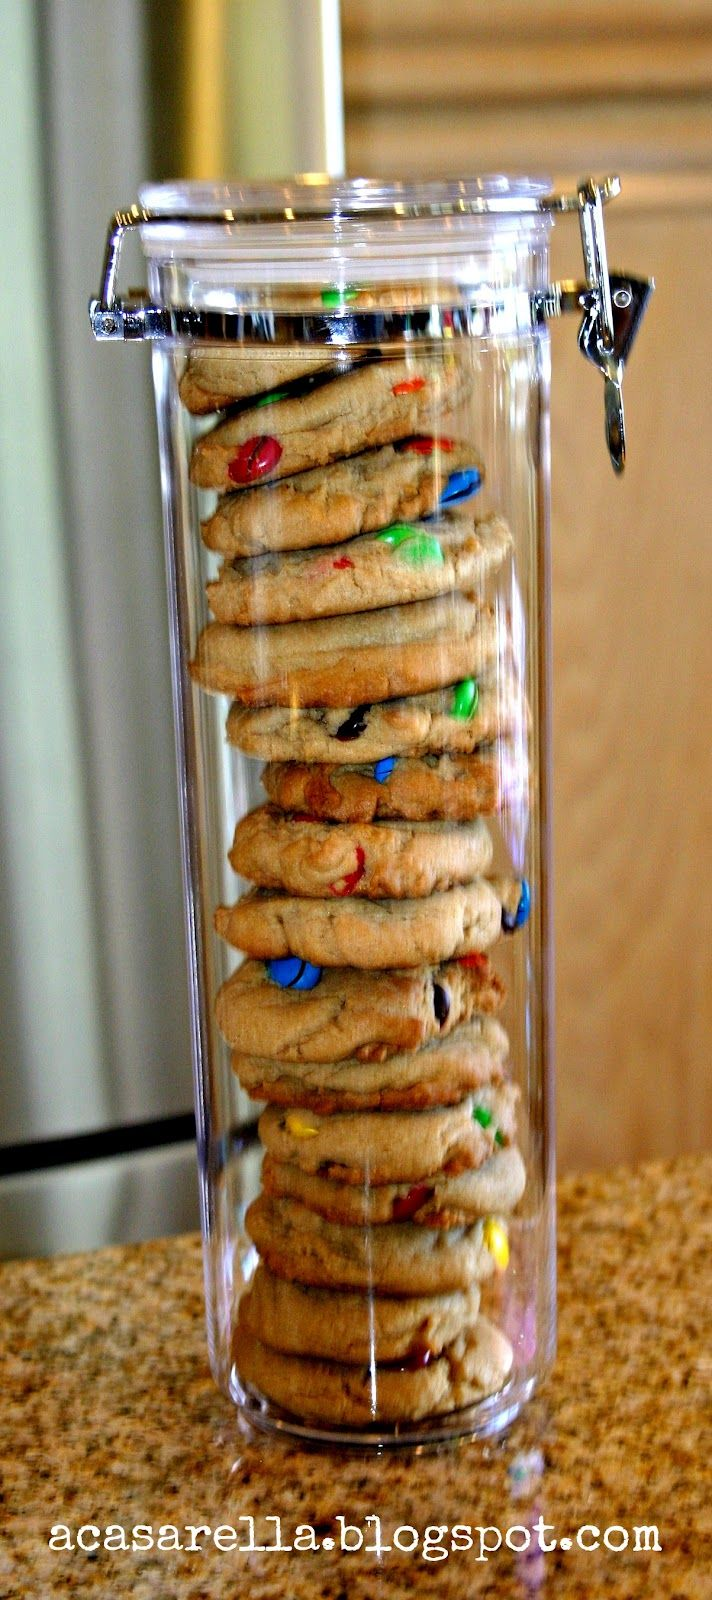 cookies stacked in a spaghetti canister. add a fun tag and bow-makes a great gift!